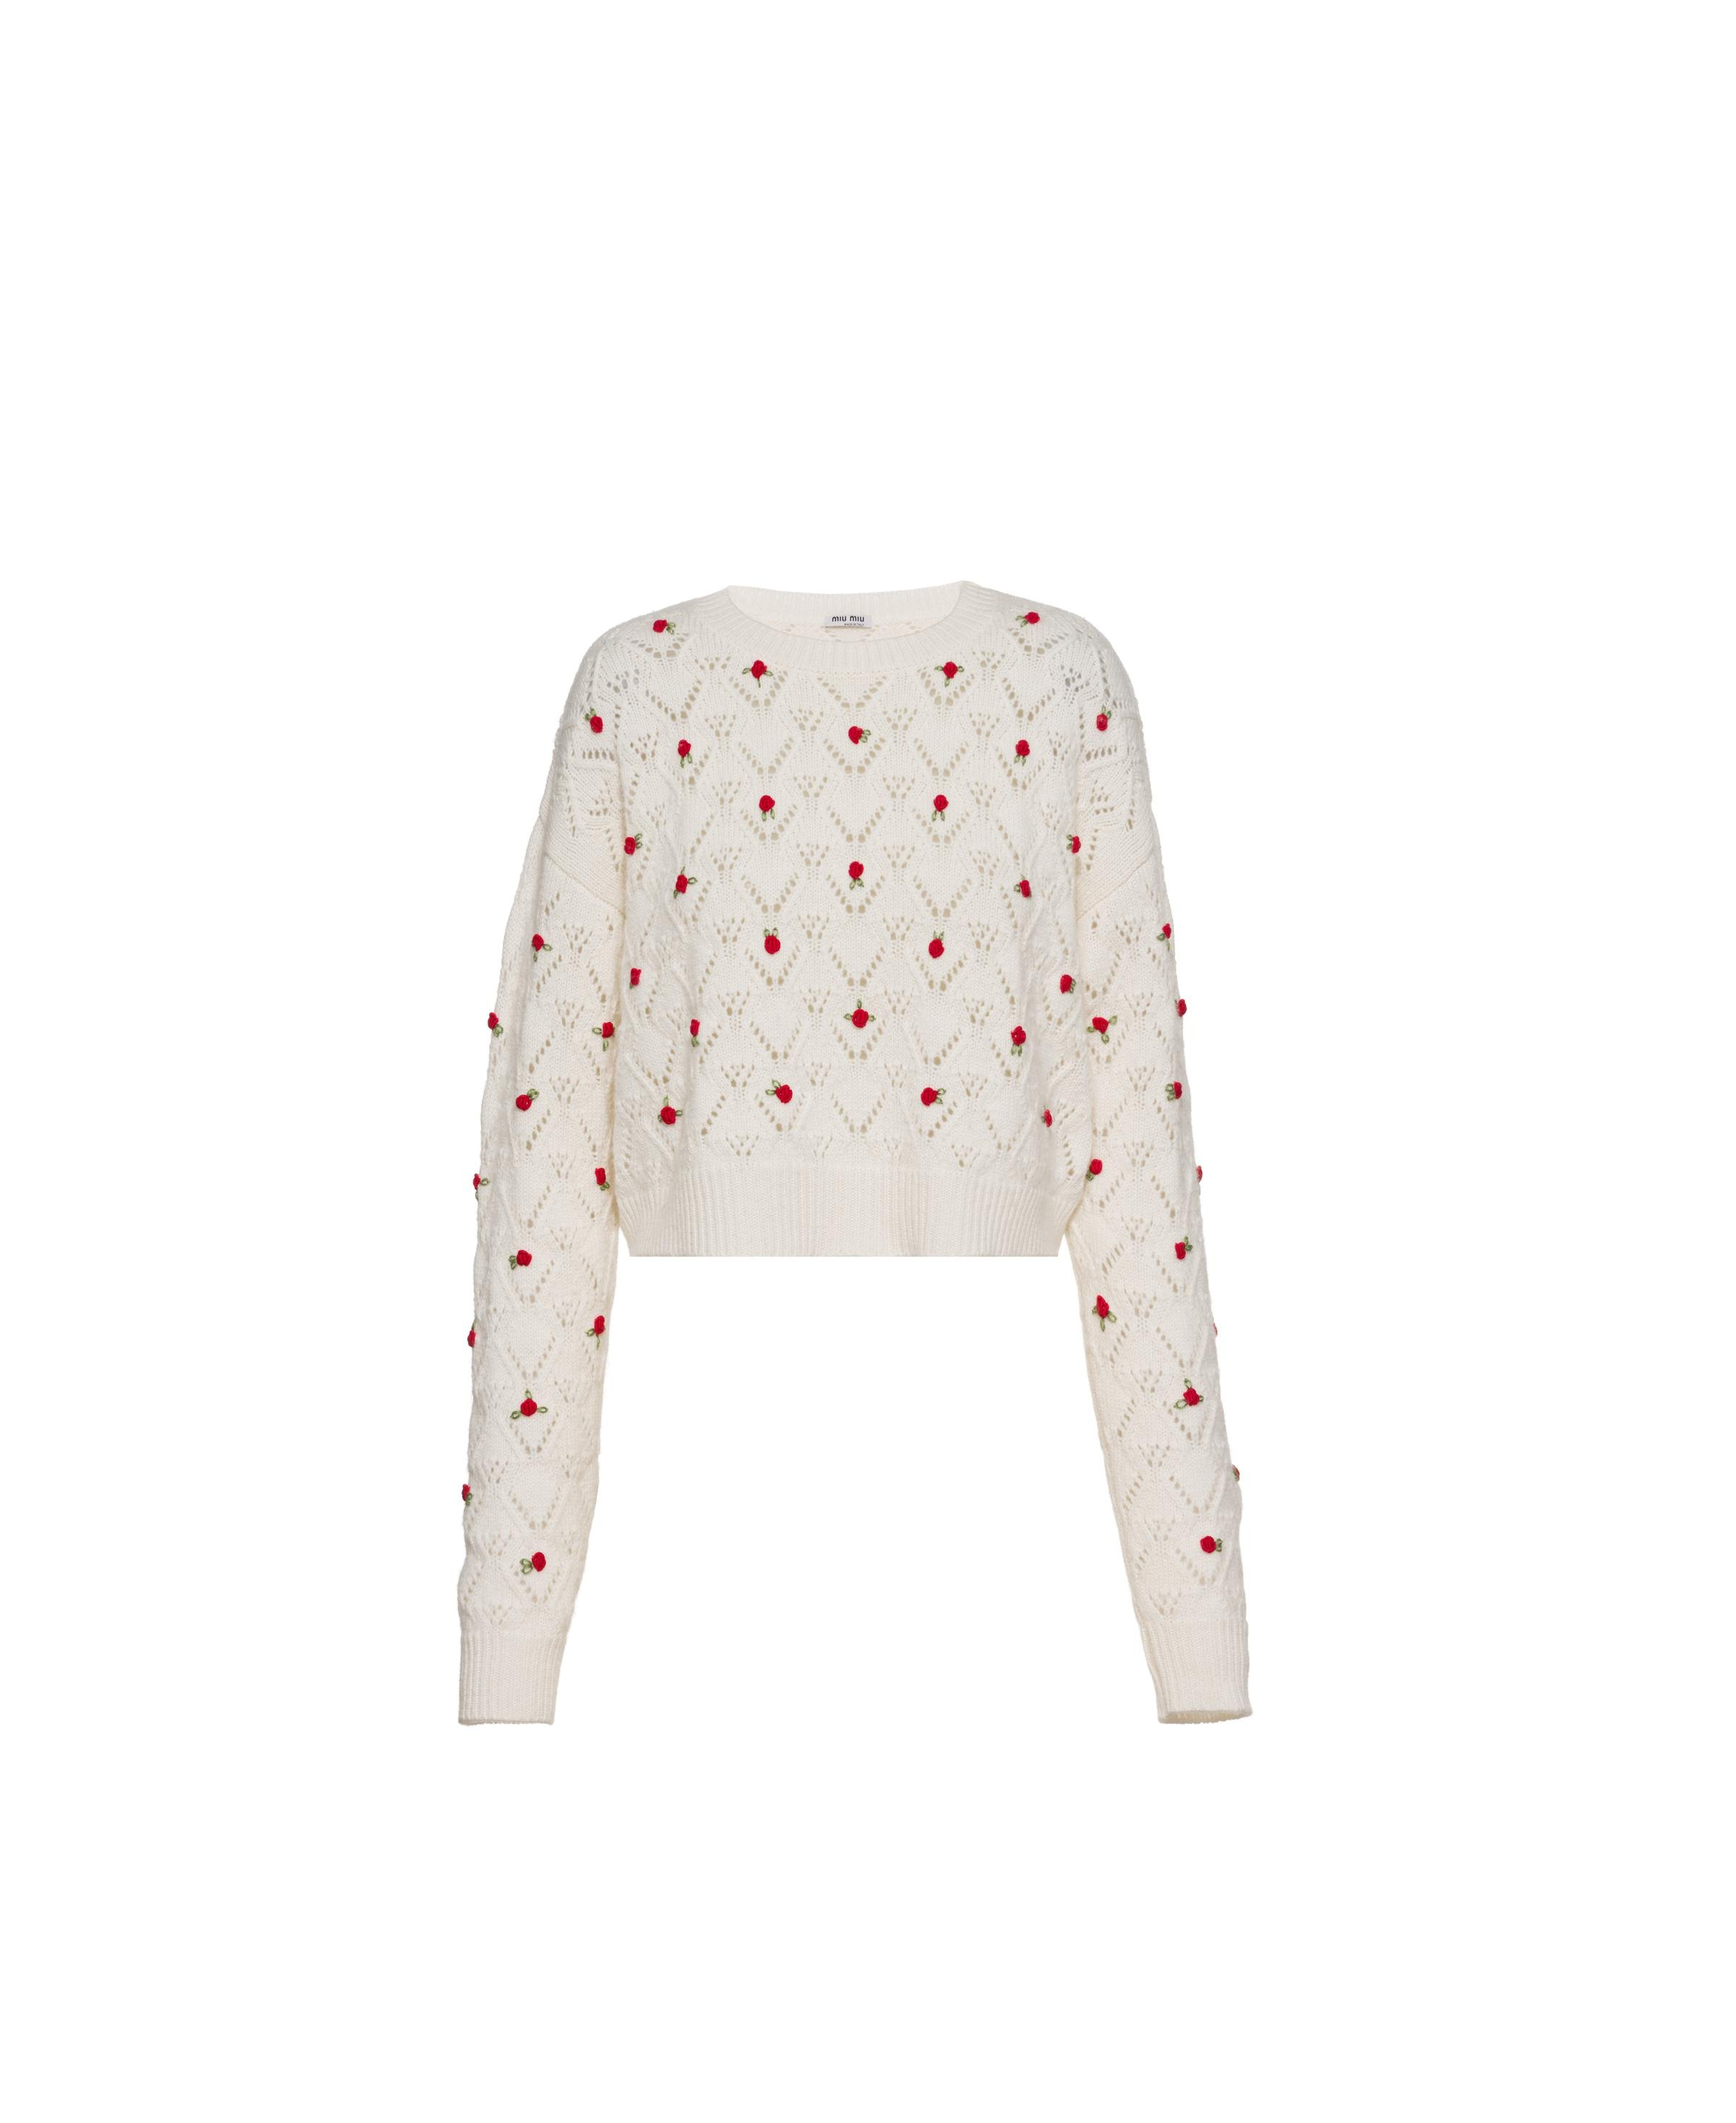 Embroidered Cashmere Sweater Women Milky White